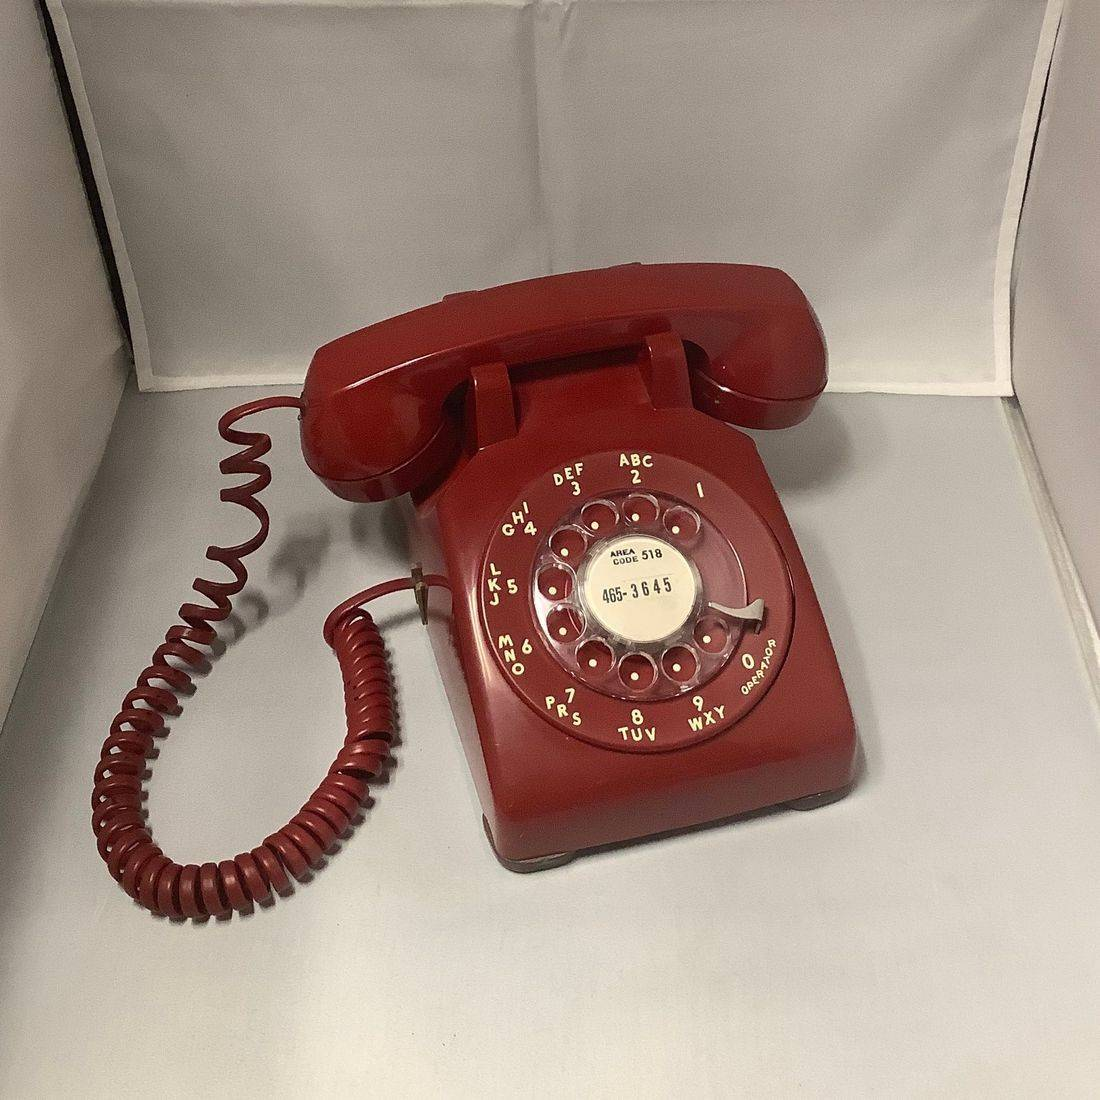 'Working' Vintage Red Rotary Bell System Telephone by Western Electric   $55.00